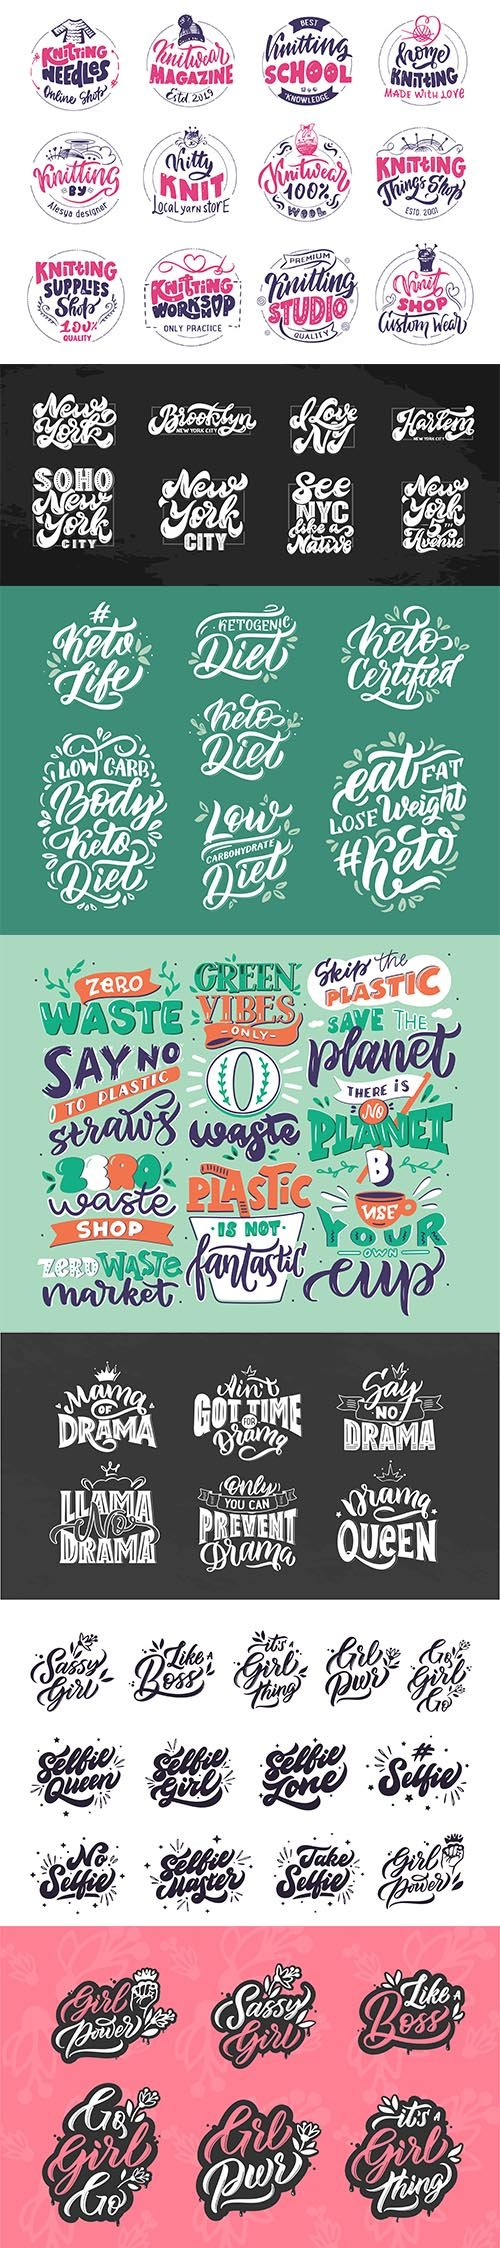 Handwritten Lettering Composition Isolated Illustrations